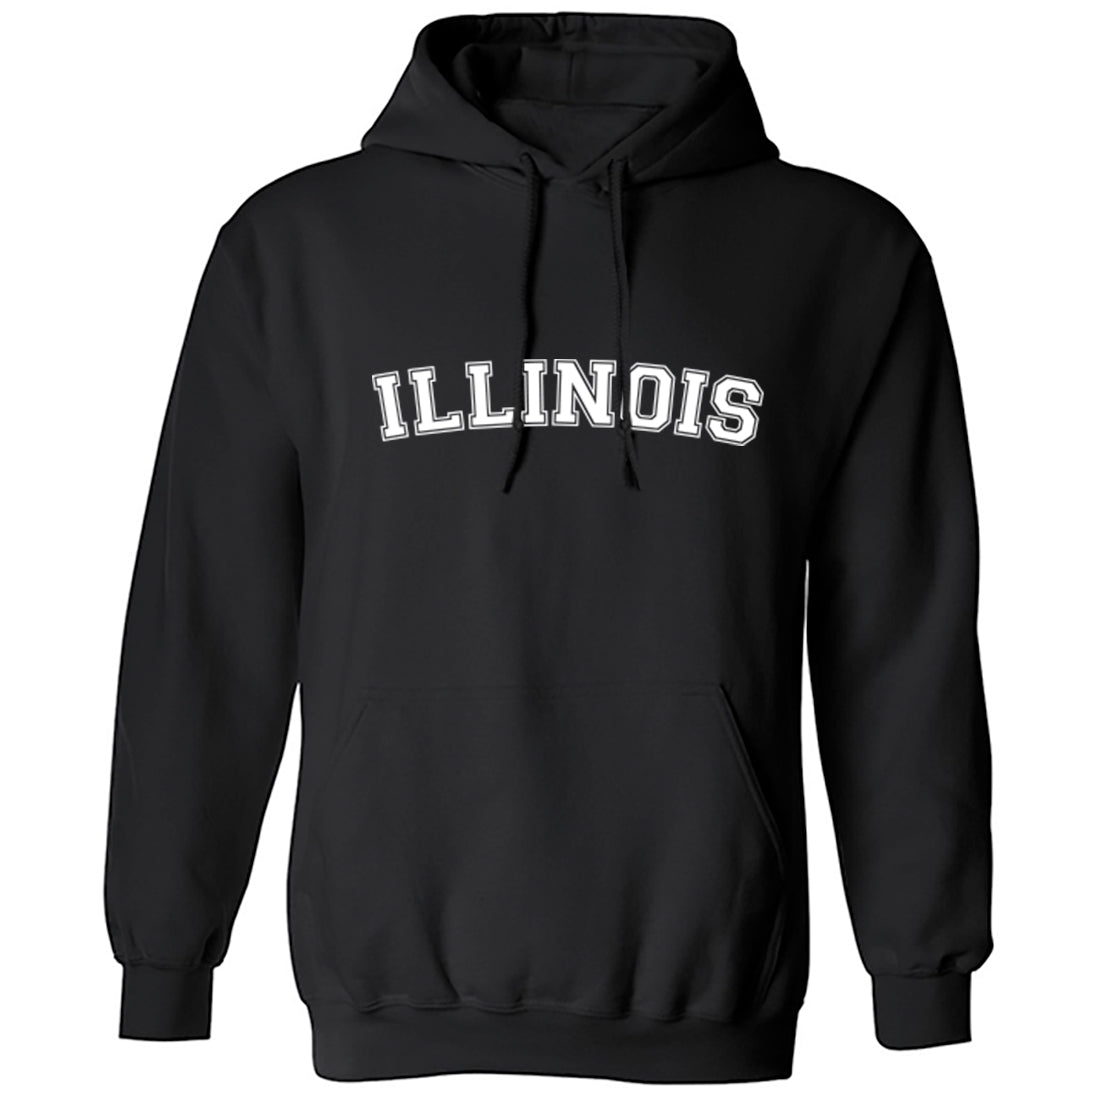 Illinois American Type Unisex Hoodie K1103 - Illustrated Identity Ltd.